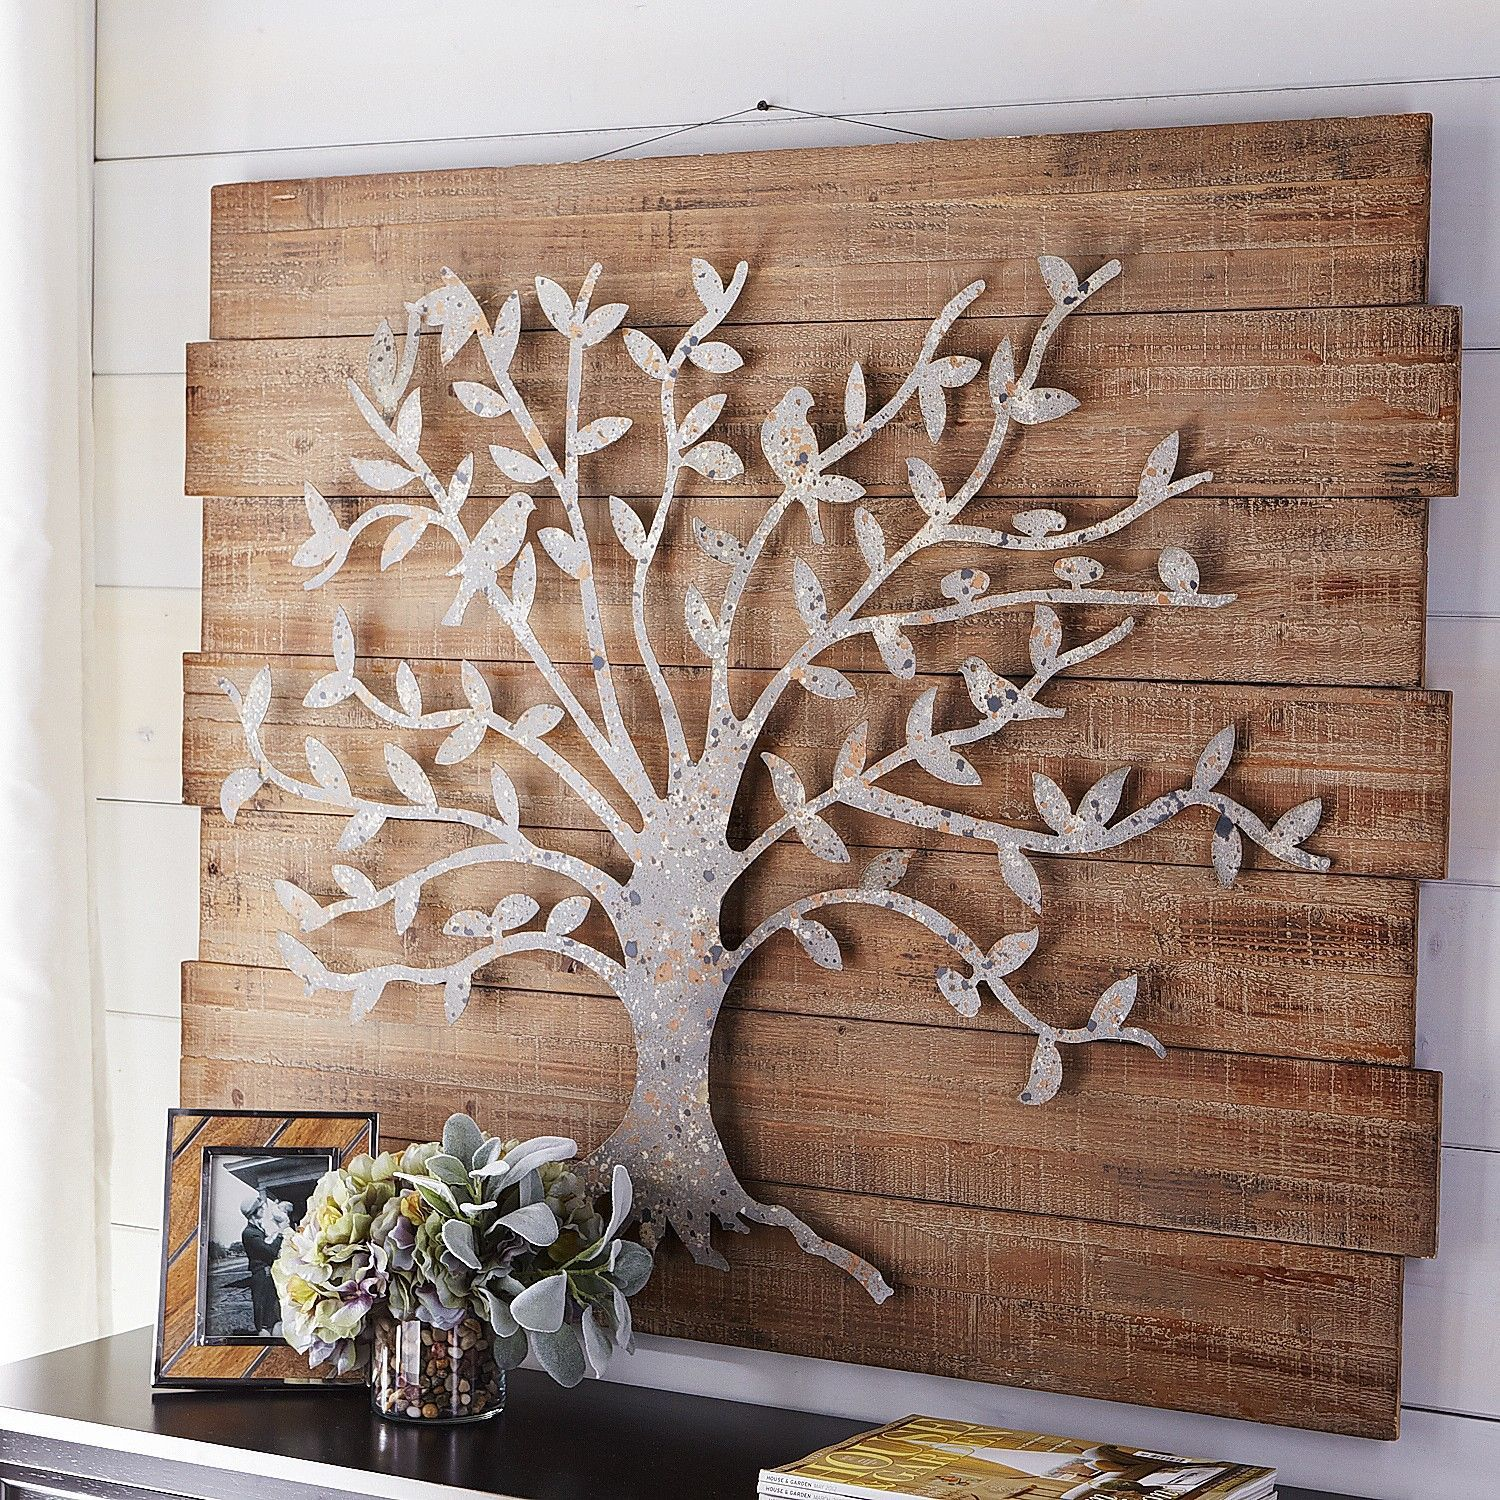 Wall Decor Market Analysis By Top Players – Bed Bath & Beyond, Home Depot, IKEA, Lowes